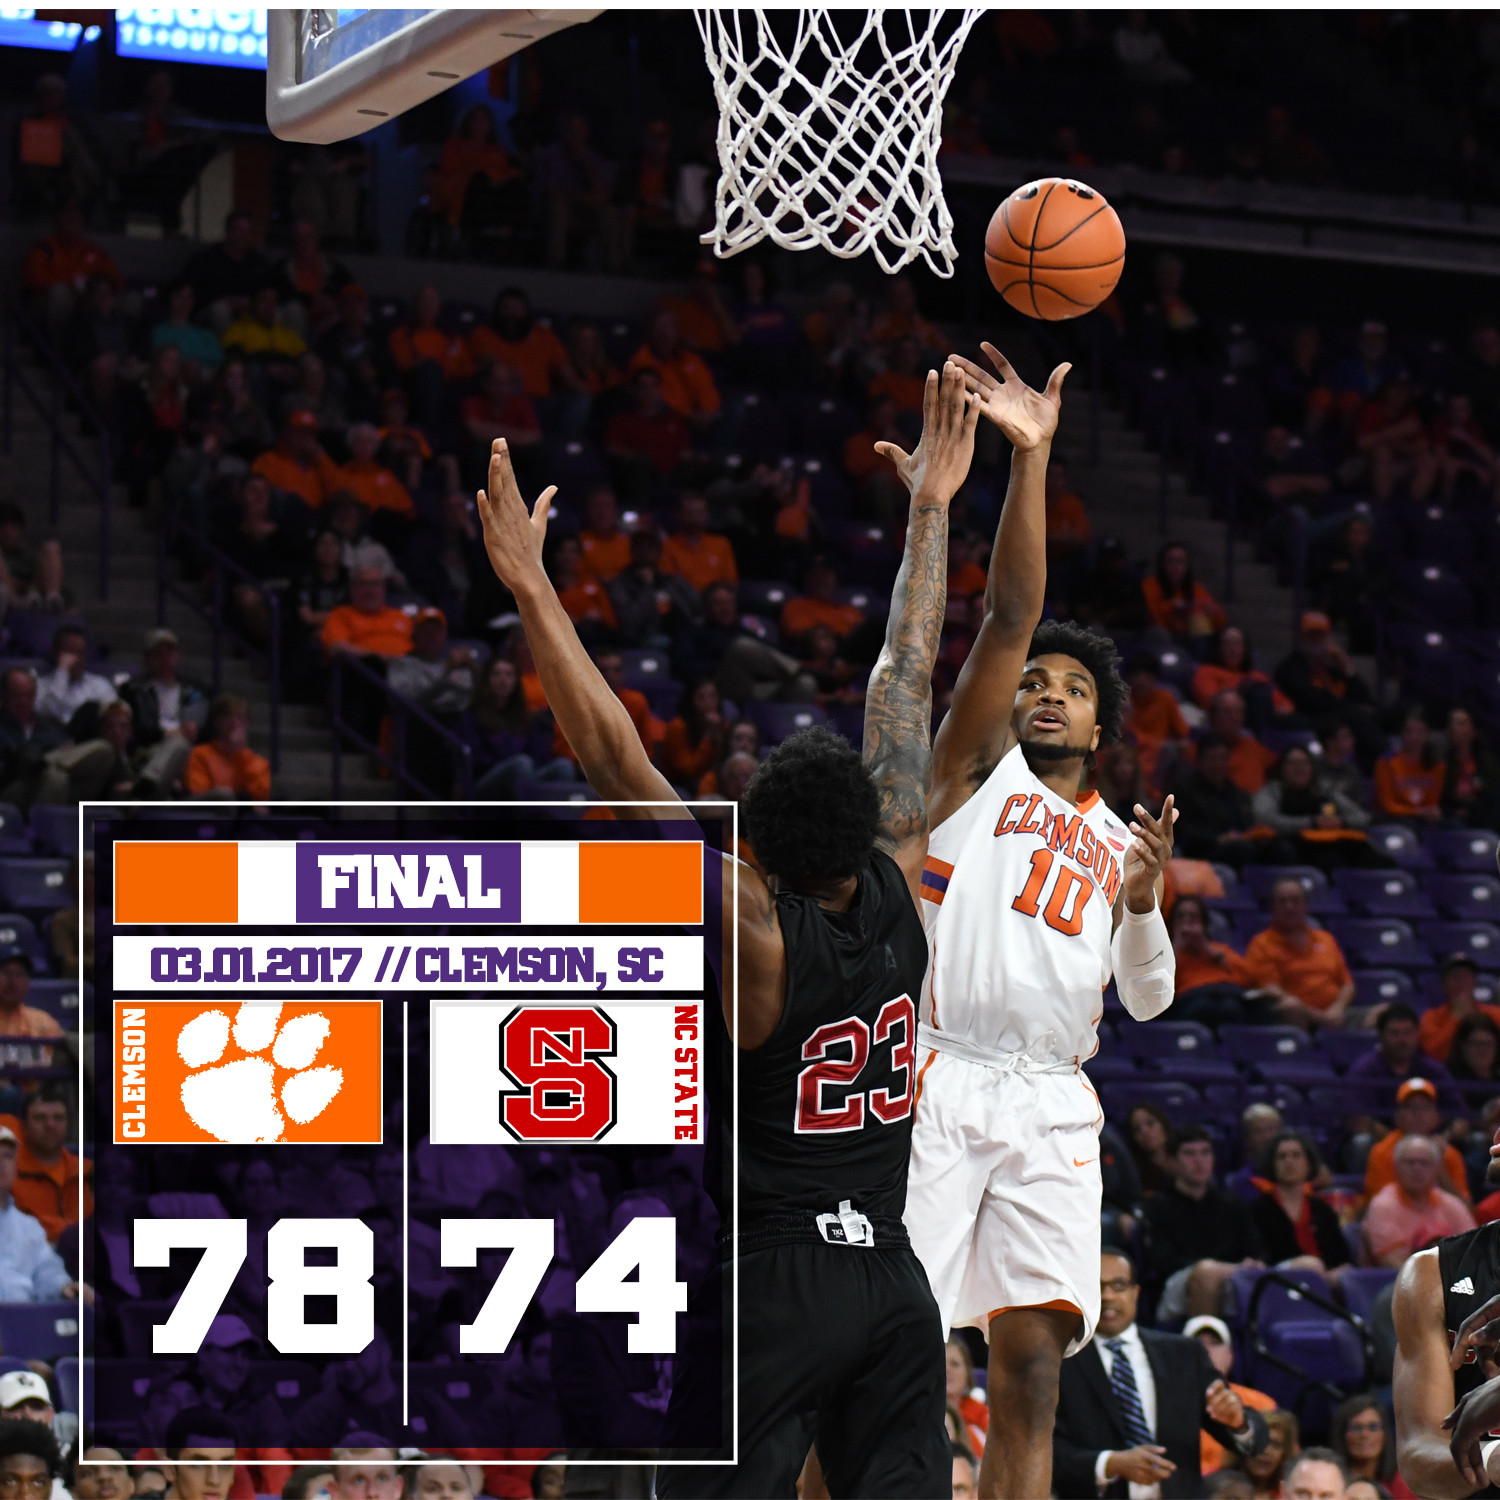 Tigers Top NC State, 78-74